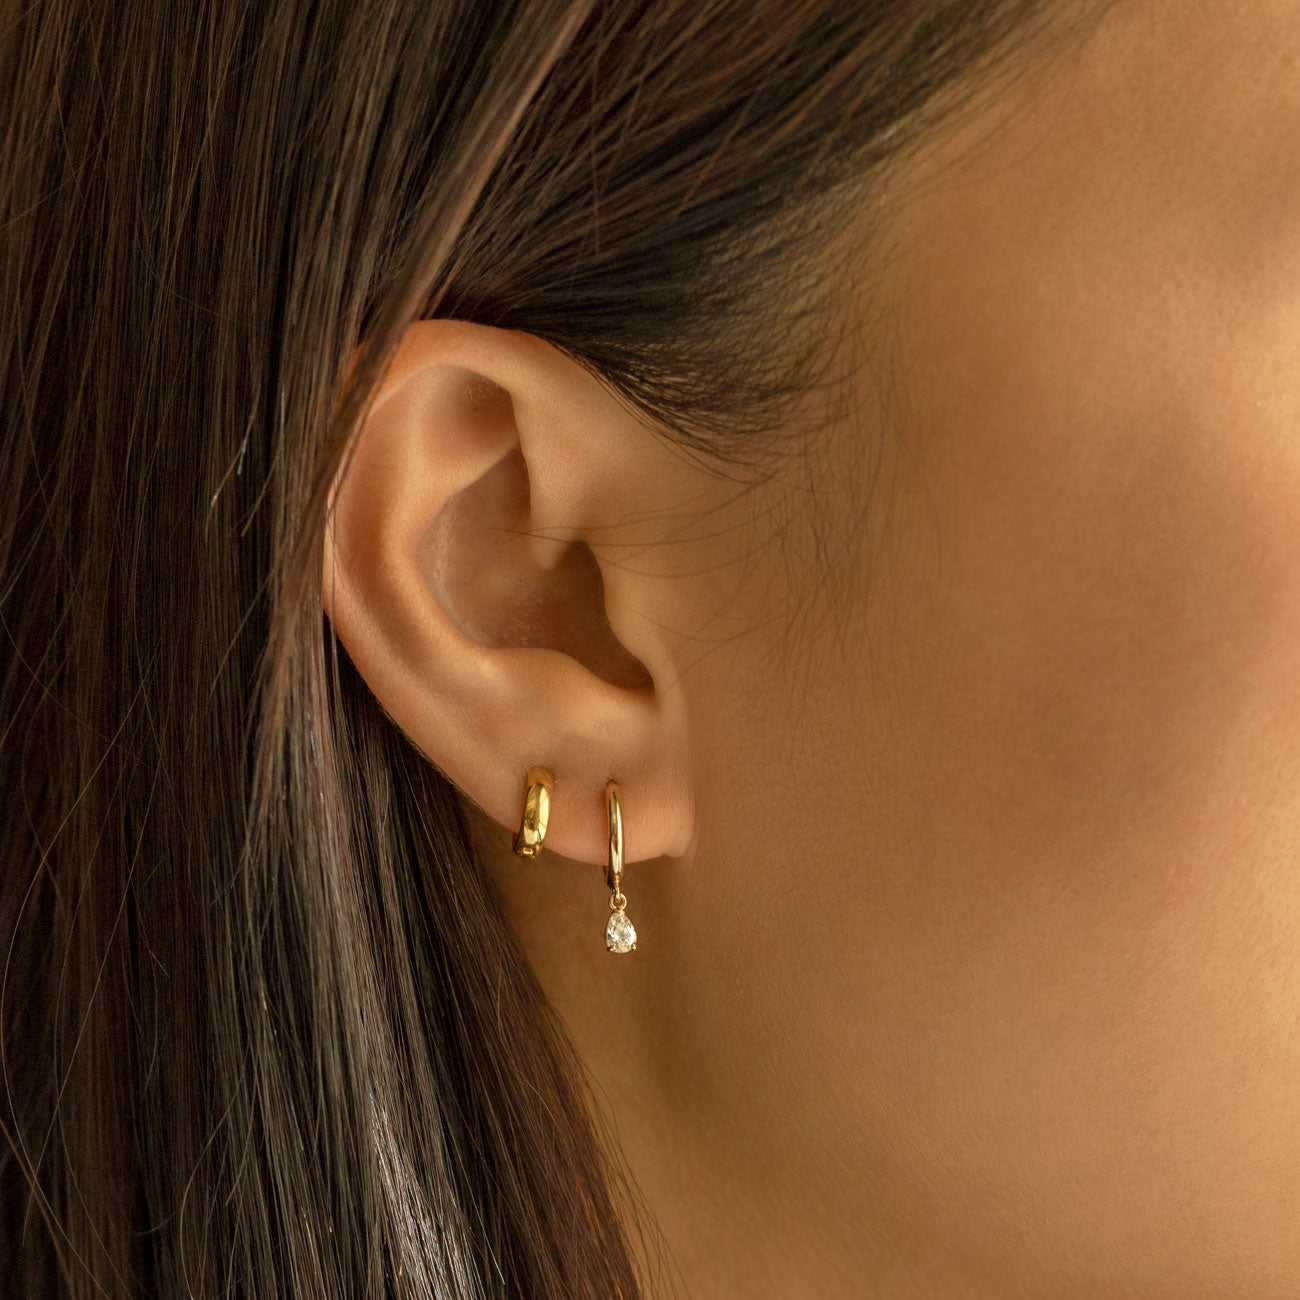 caption: Model's second hole length: 4.8mm, wearing 6mm